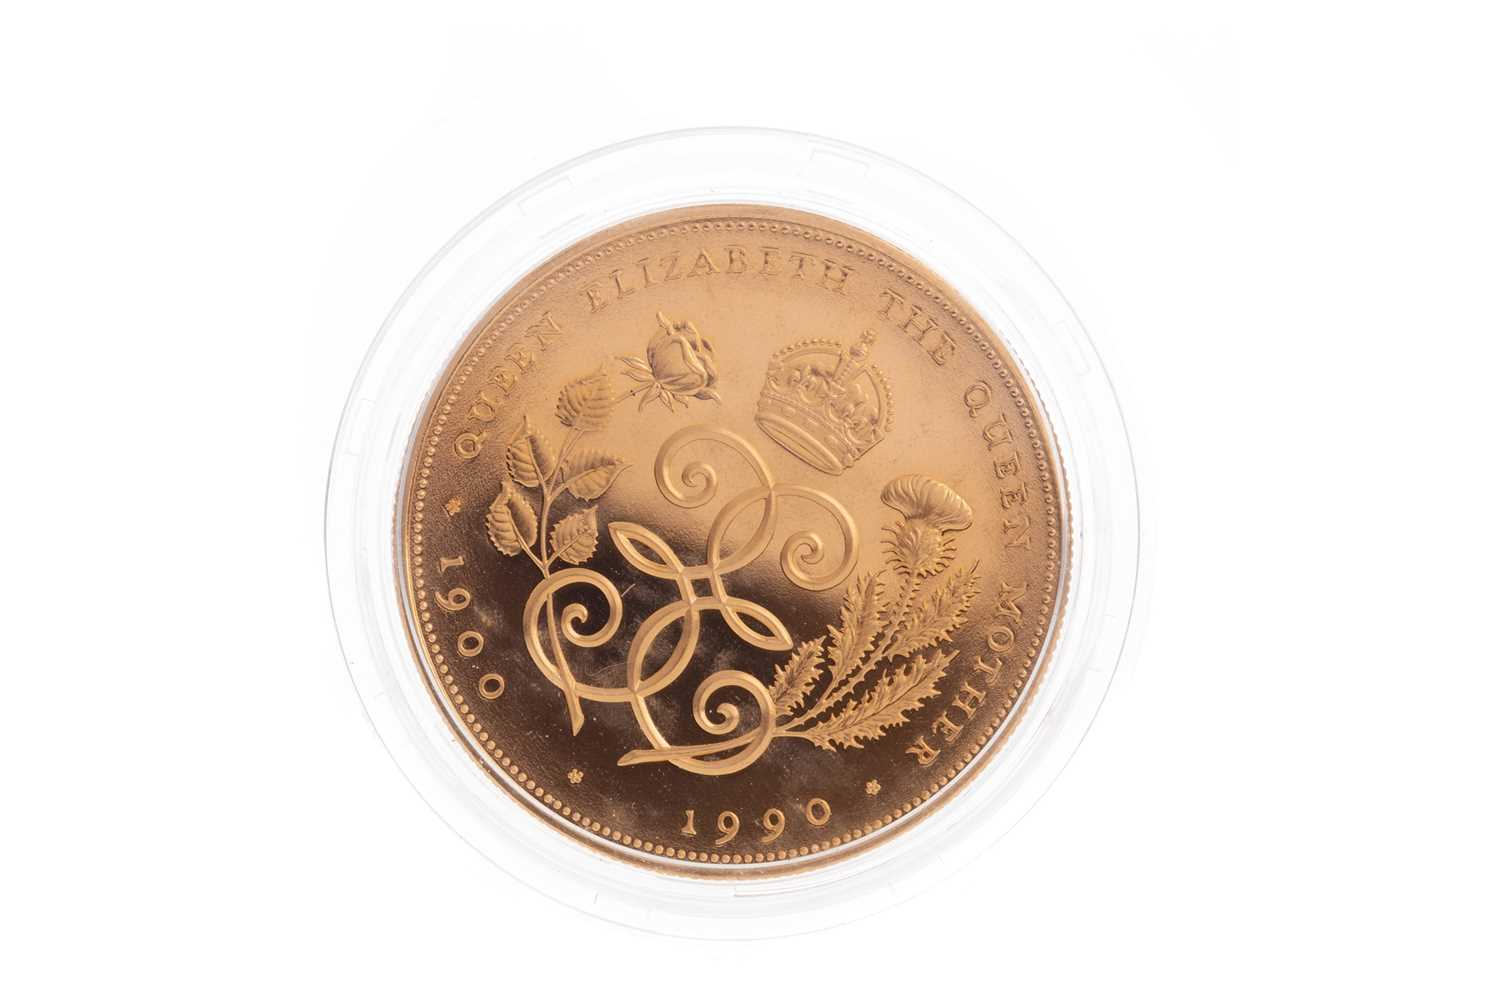 Lot 95 - THE QUEEN MOTHER 90TH BIRTHDAY GOLD PROOF COIN